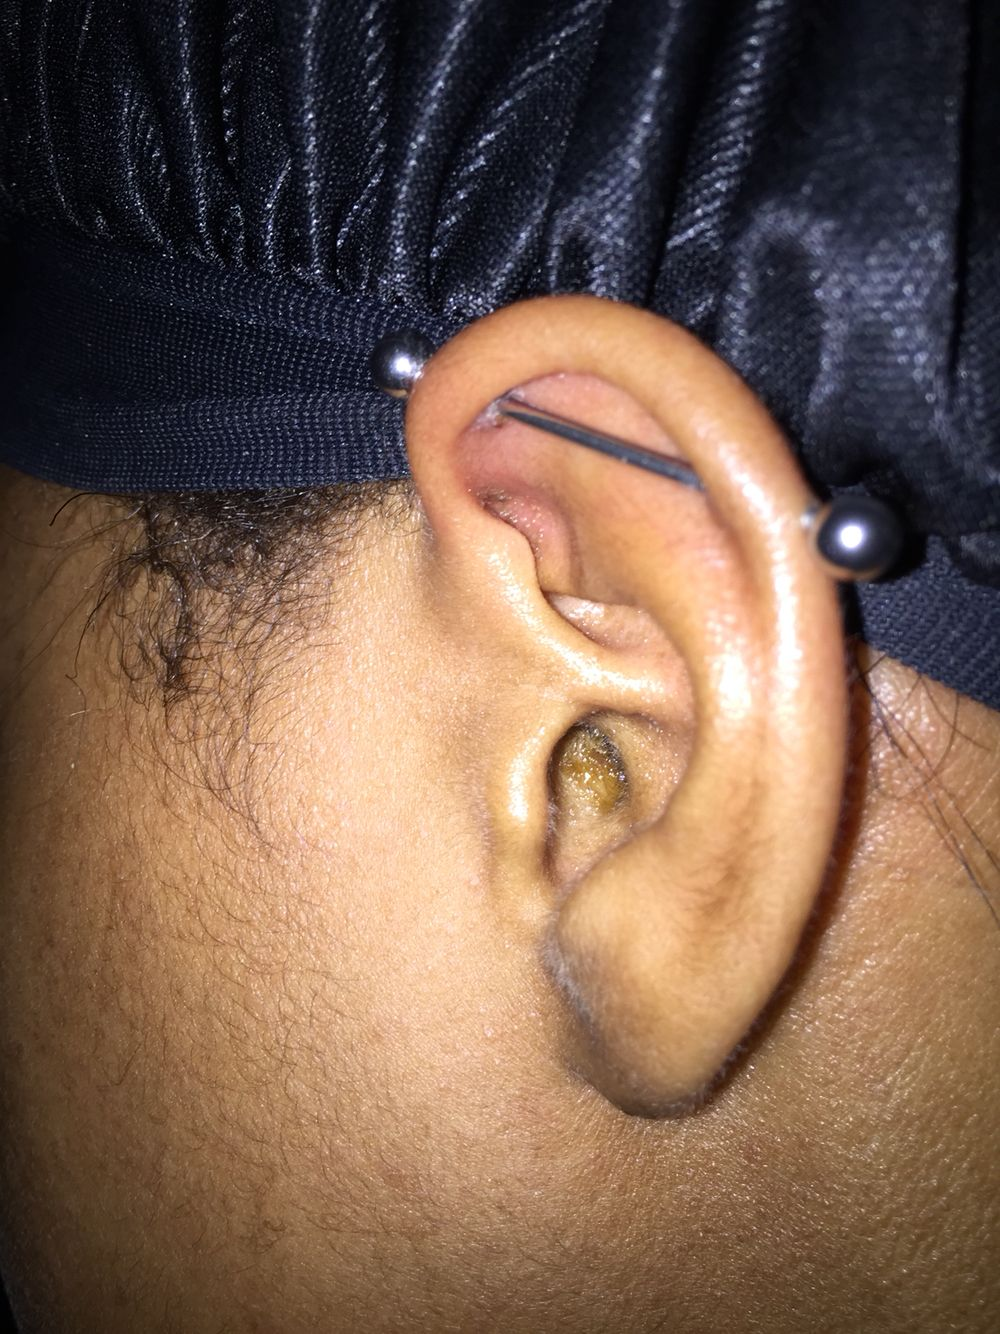 I Ve Had My Industrial Piercing For Around 2 Months Now It Seems